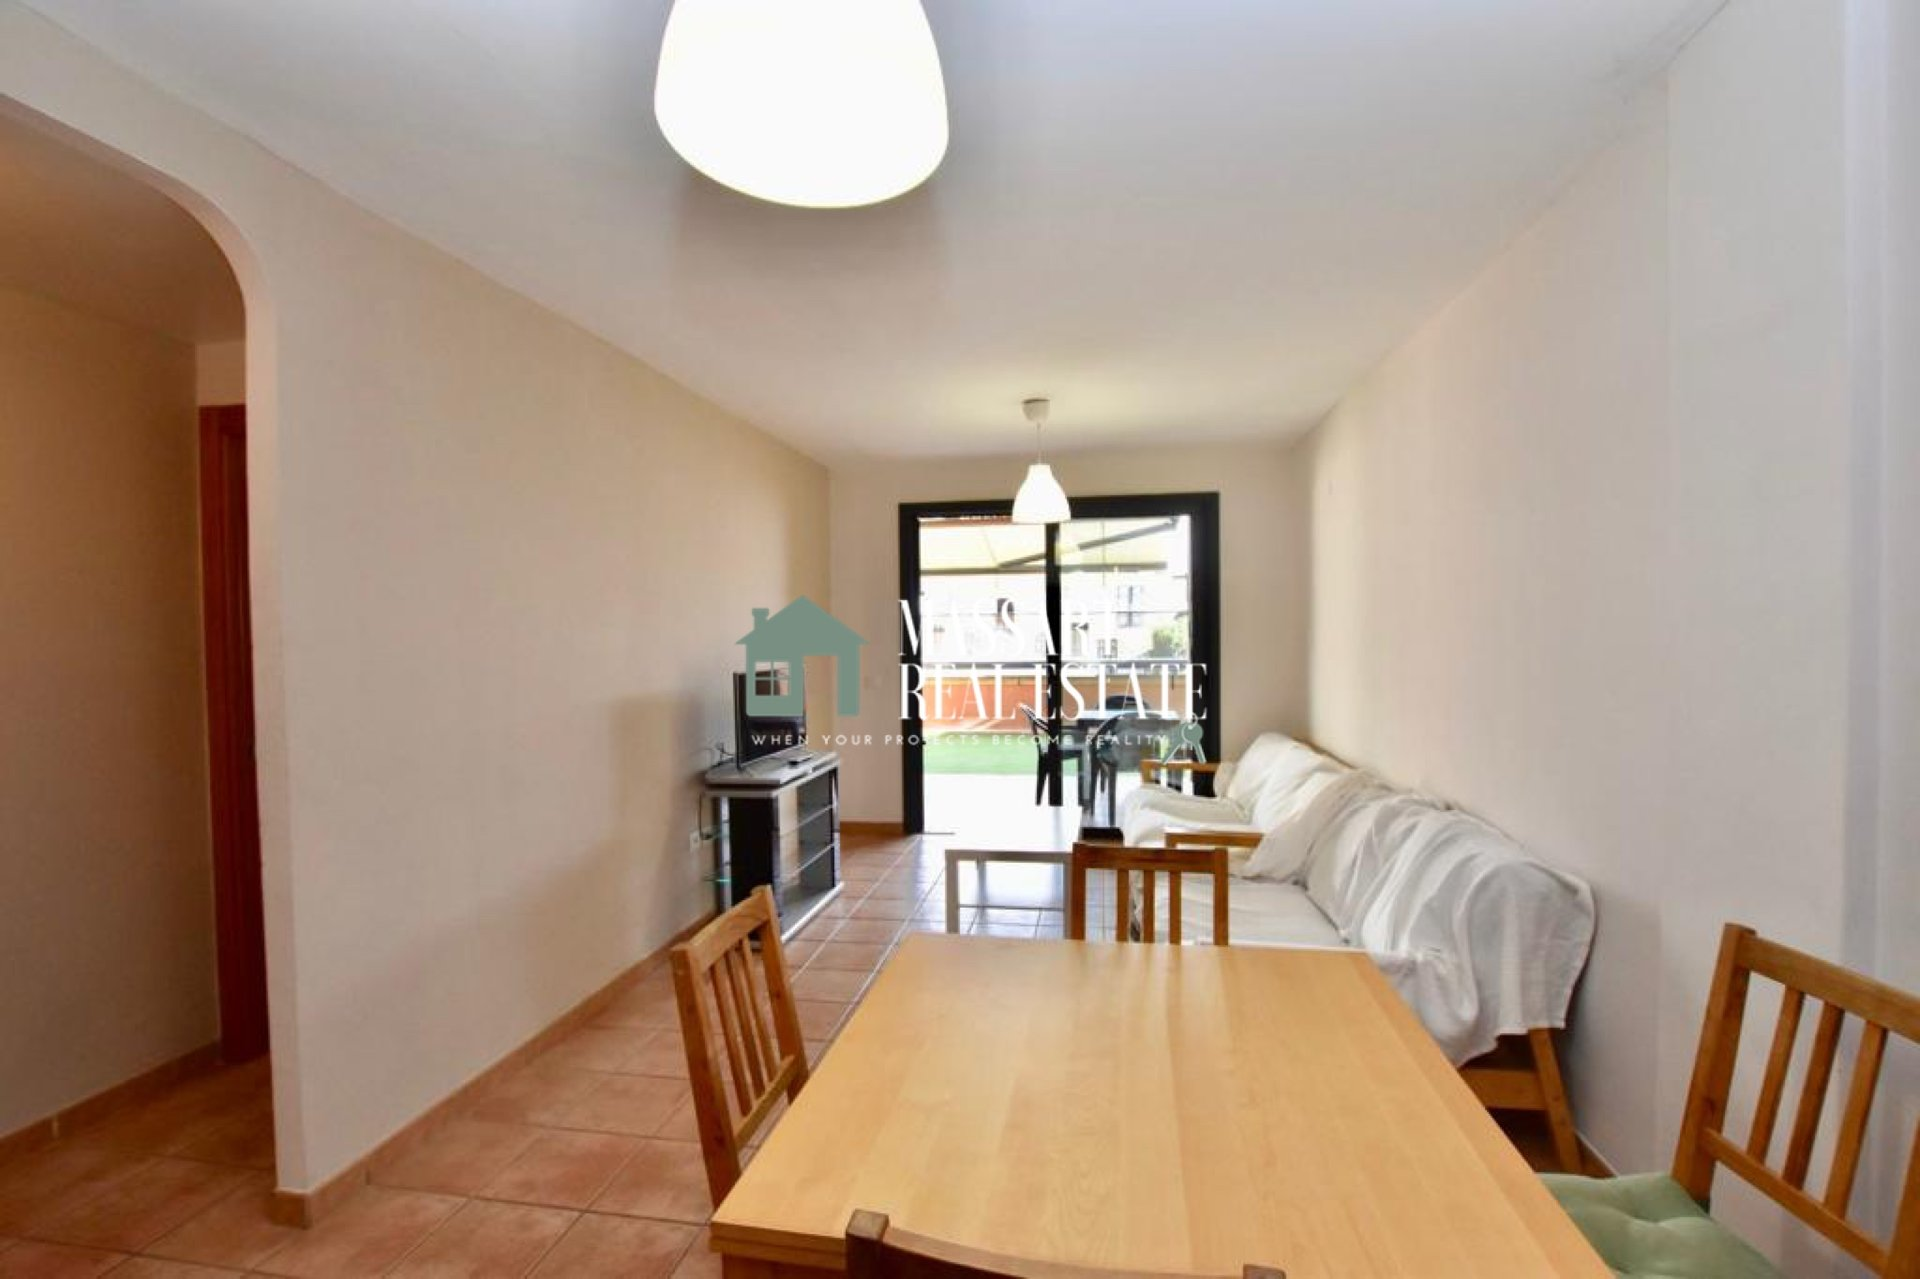 """For sale in Playa Paraíso (Adeje), in the residential """"Paraíso II"""", fully furnished and renovated apartment ... ready to move into!."""